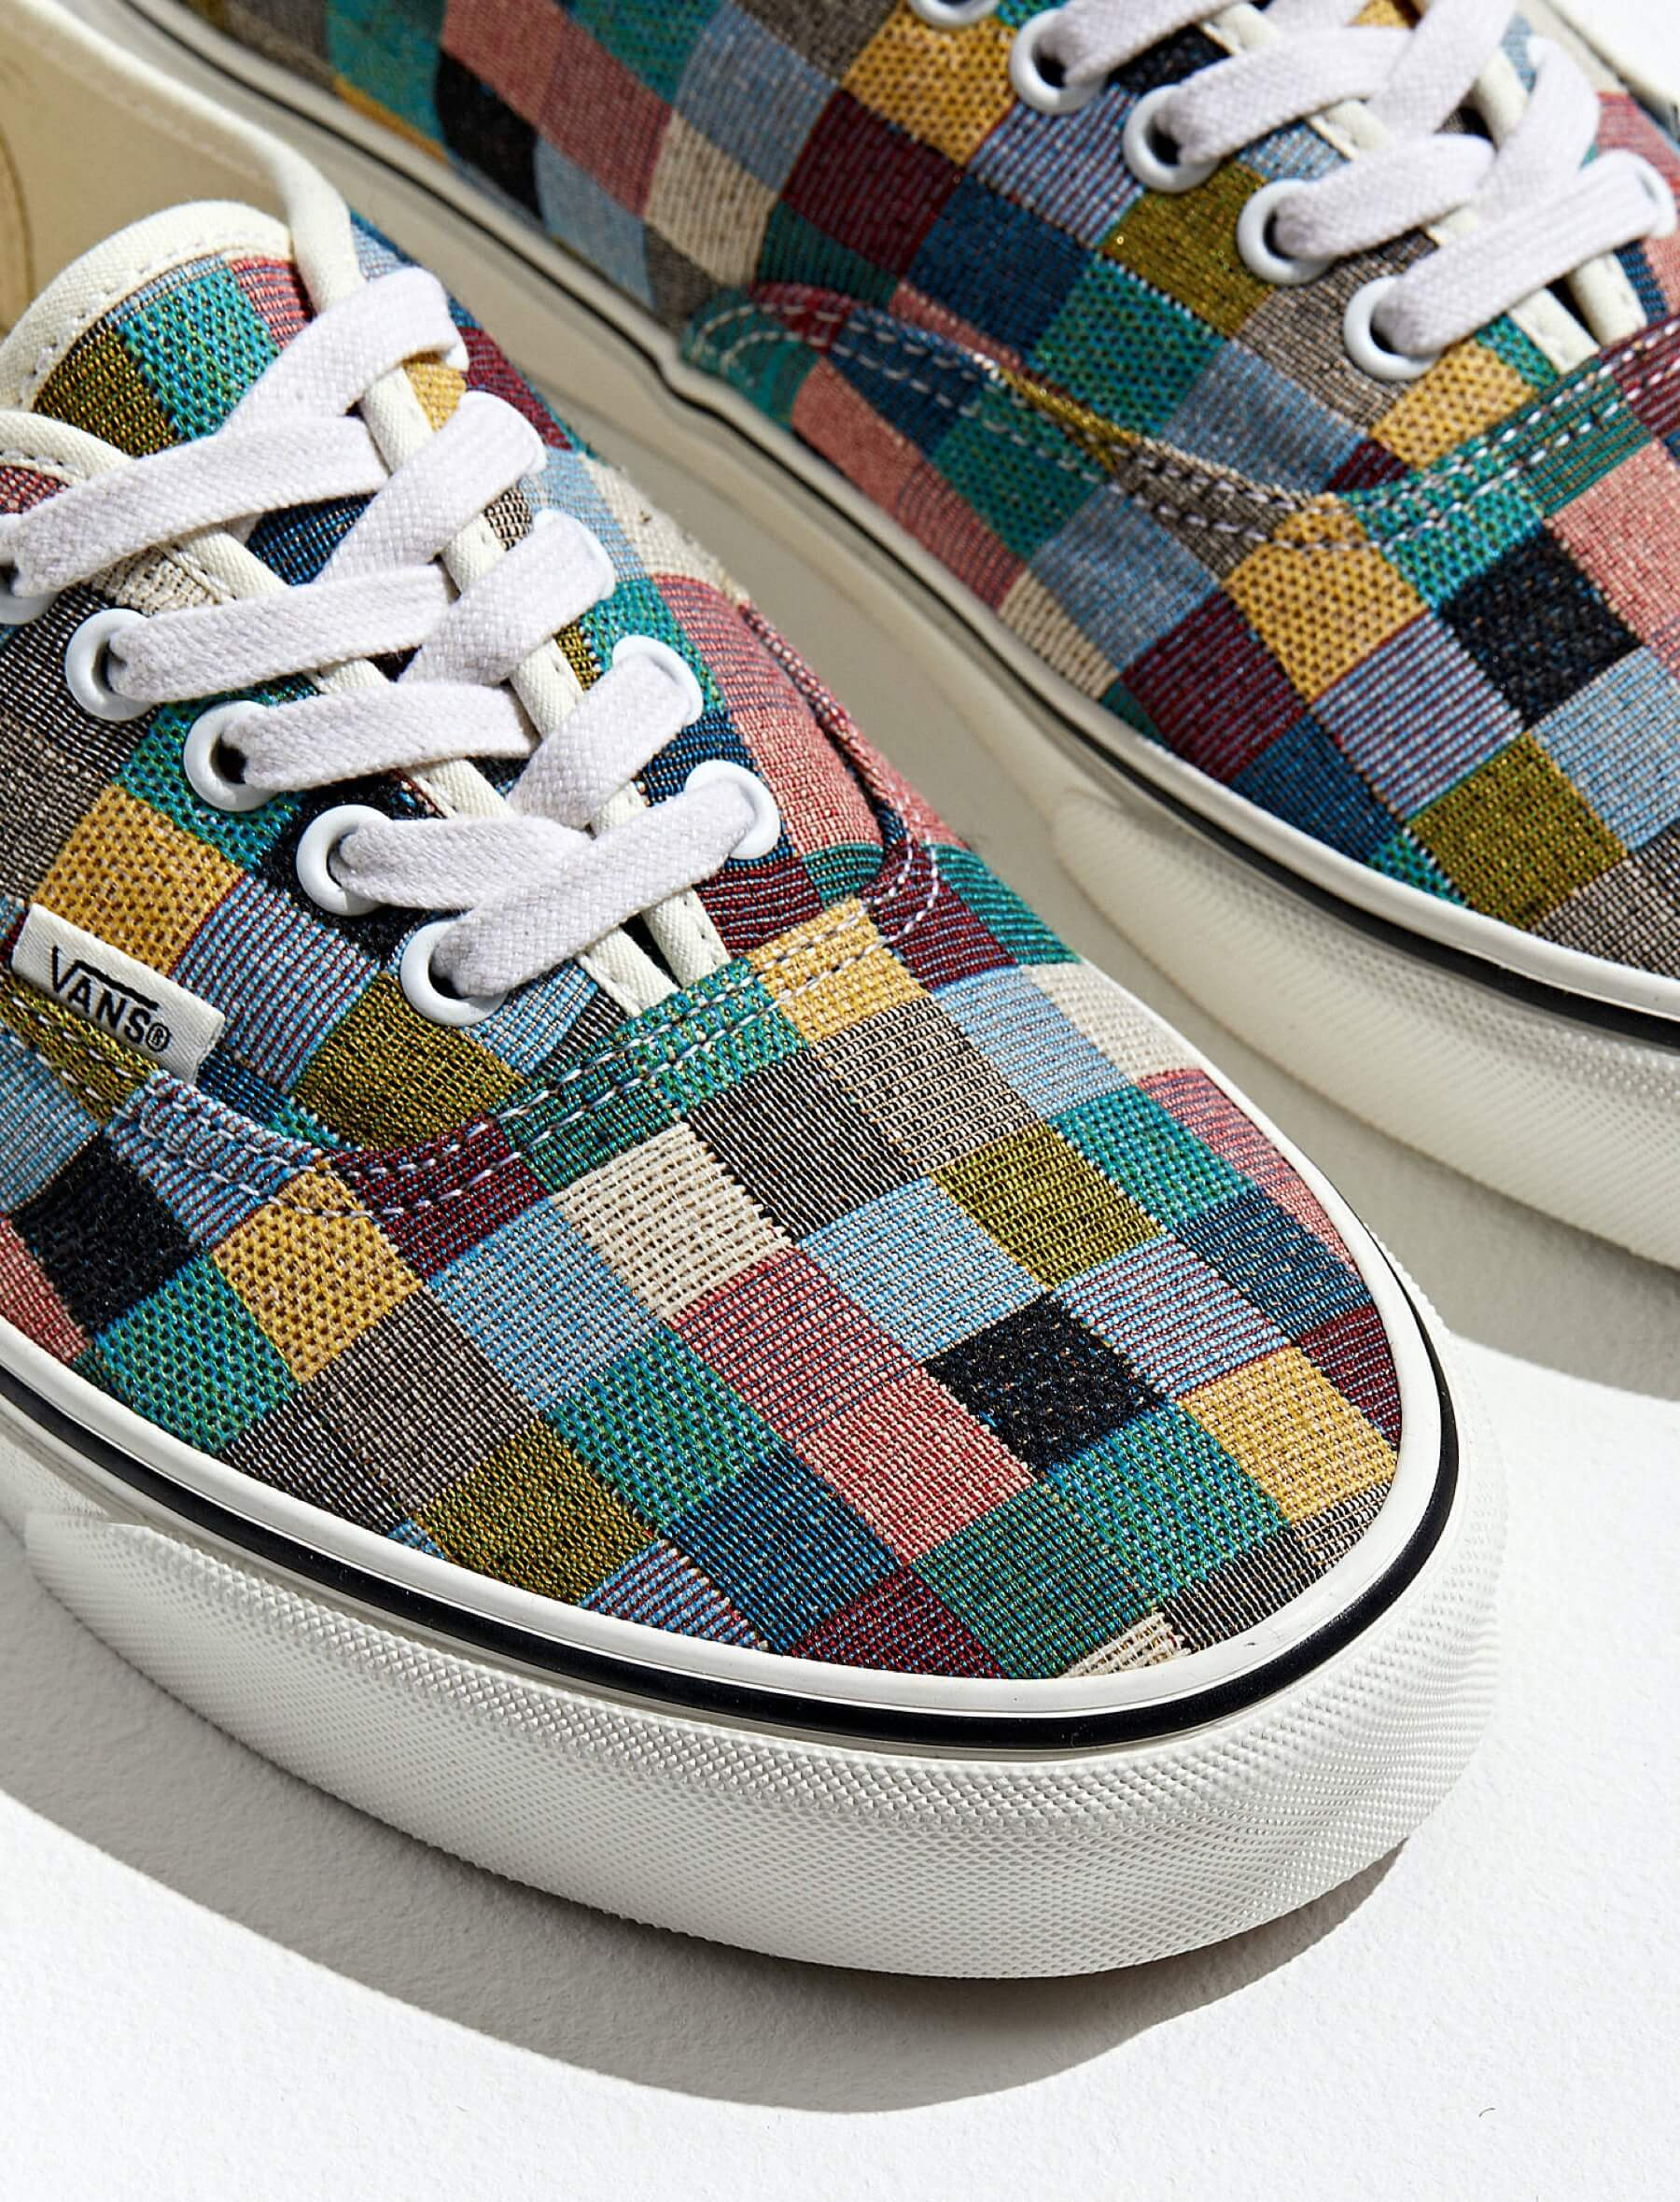 Vans Authentic Patchwork Shoe